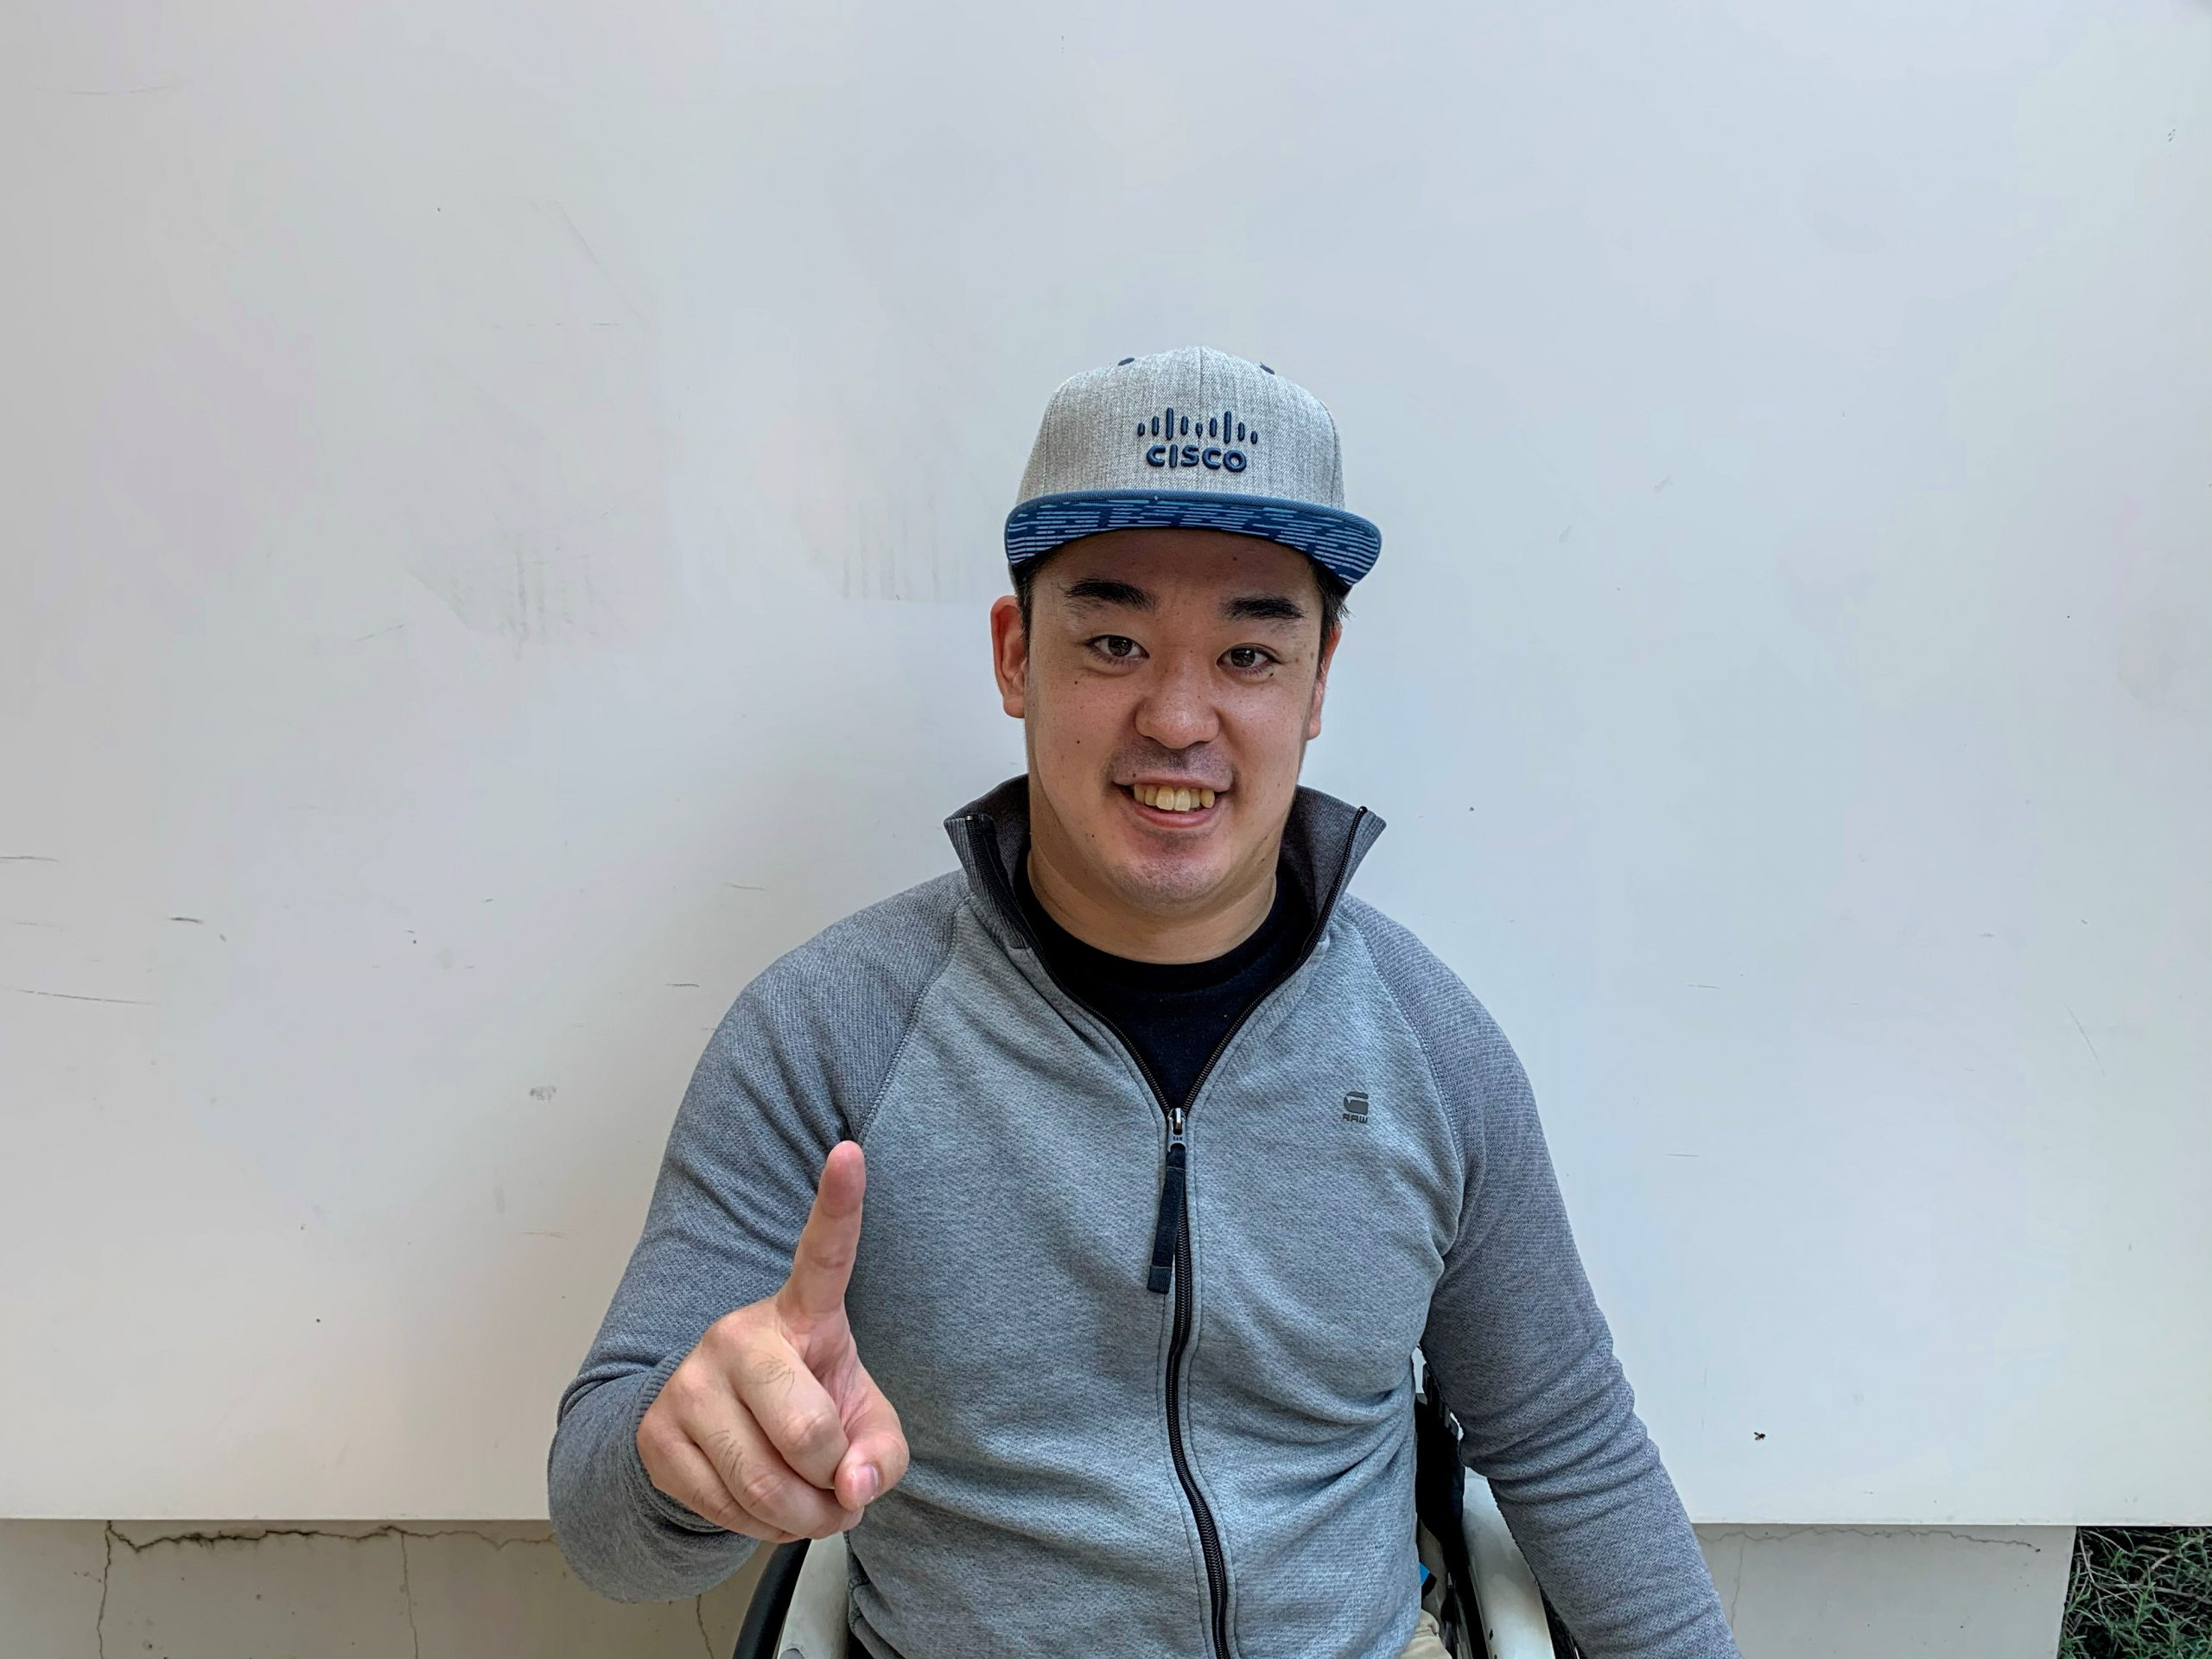 Hideaki wears a Cisco hat and holds up his finger as #1.